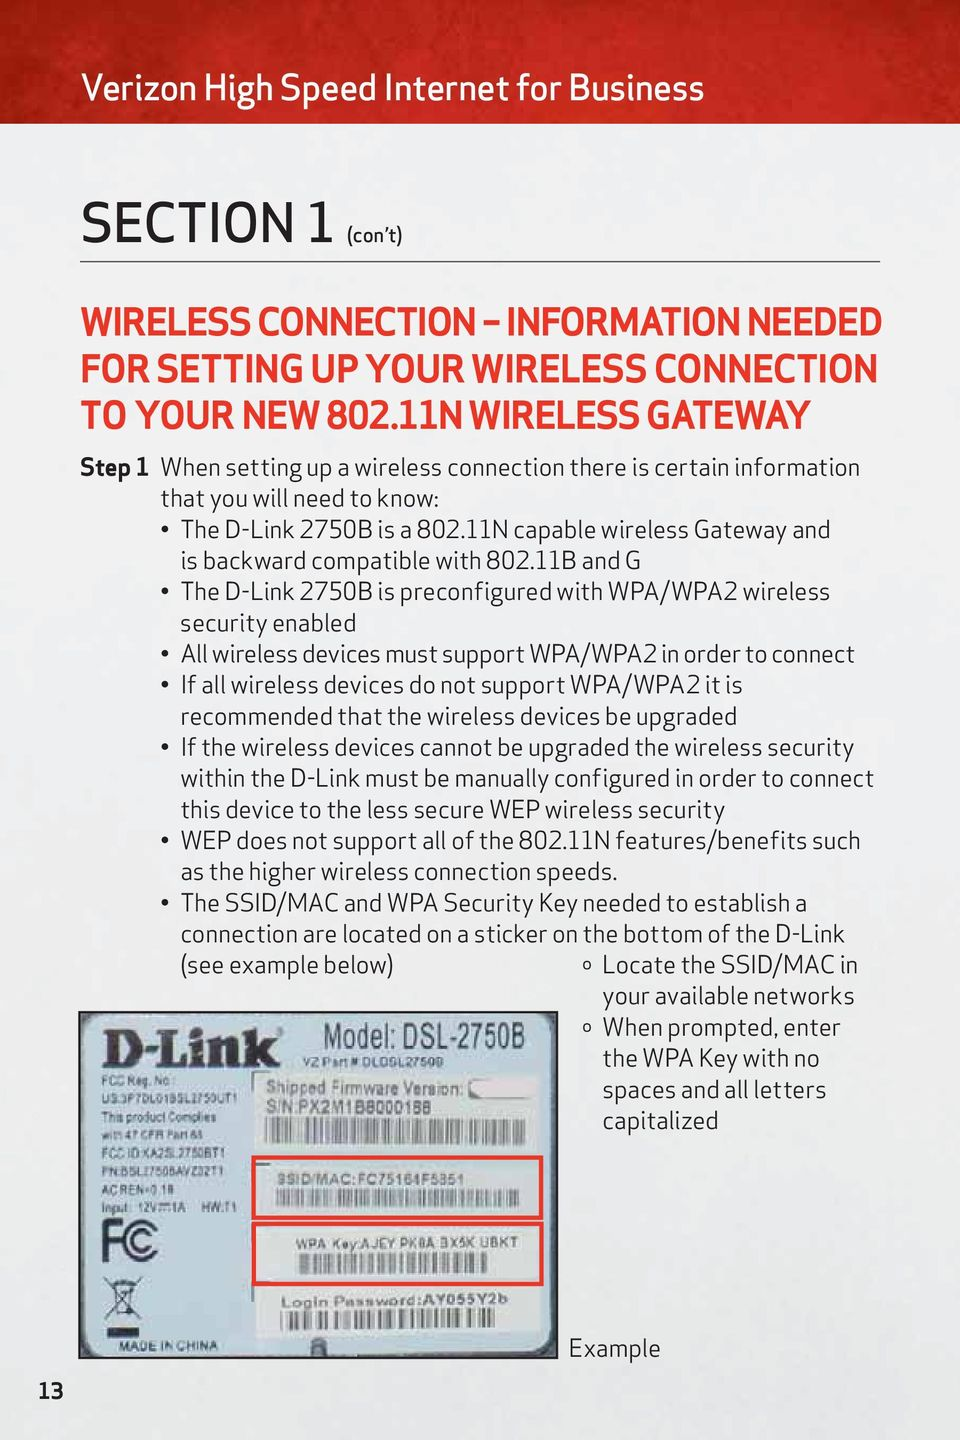 11N capable wireless Gateway and is backward compatible with 802.